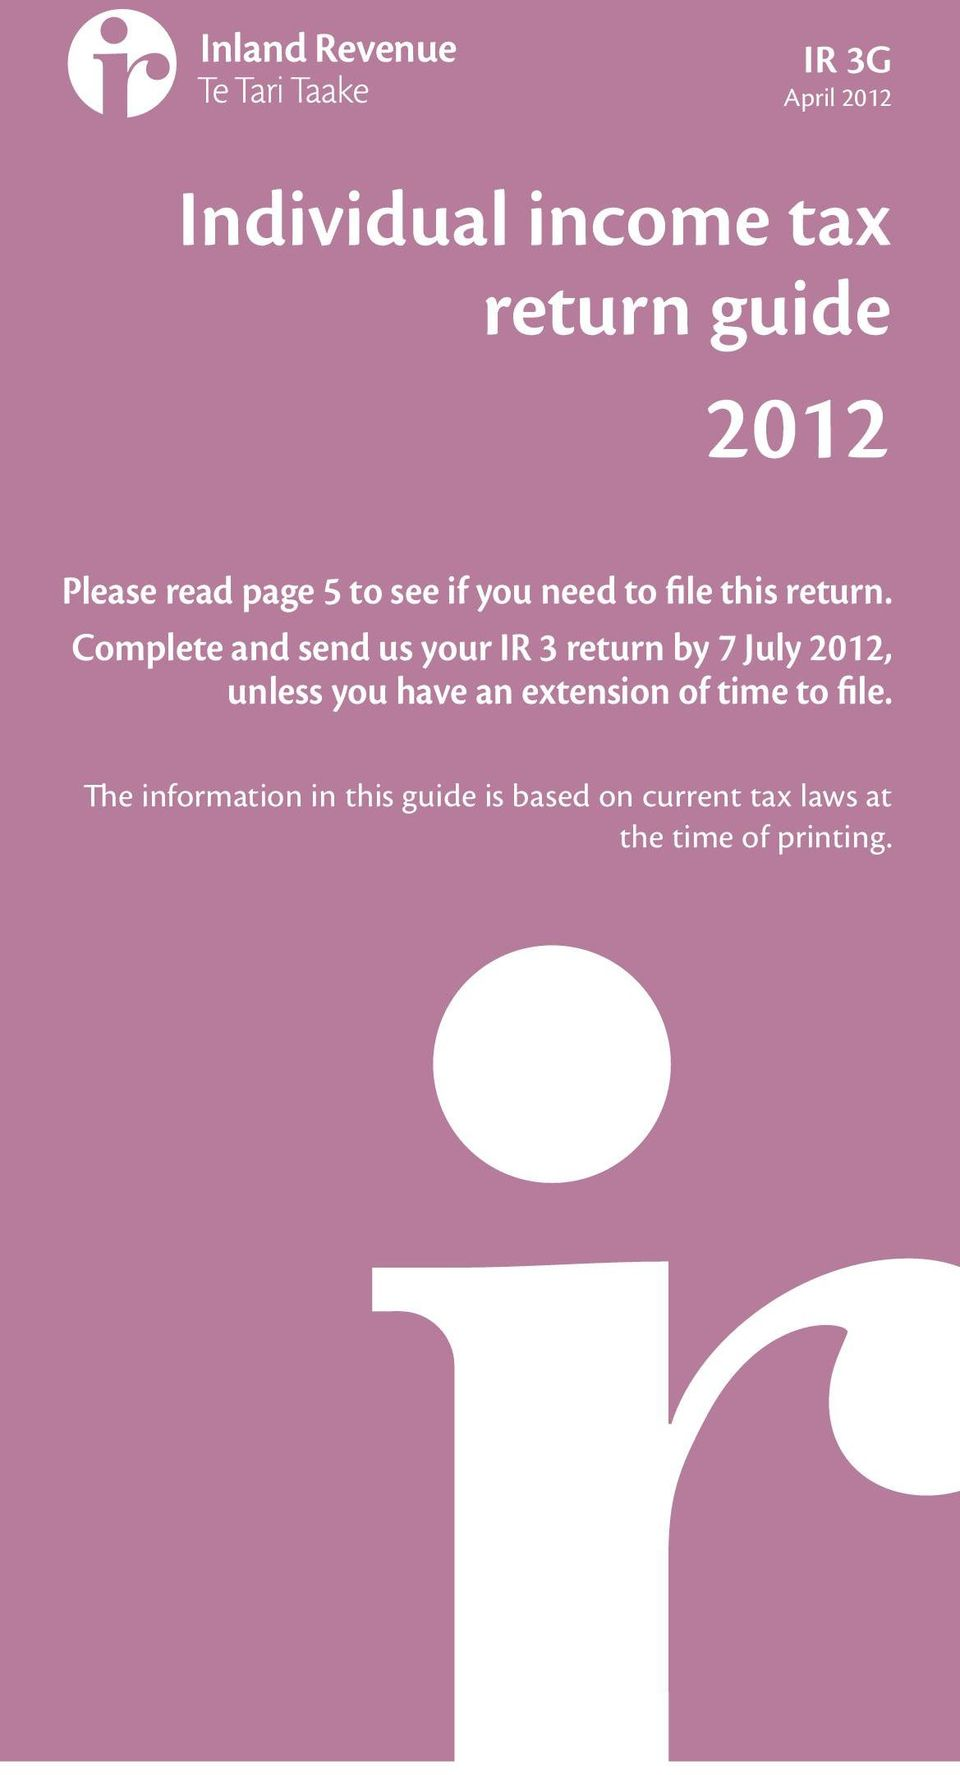 Complete and send us your IR 3 return by 7 July 2012, unless you have an